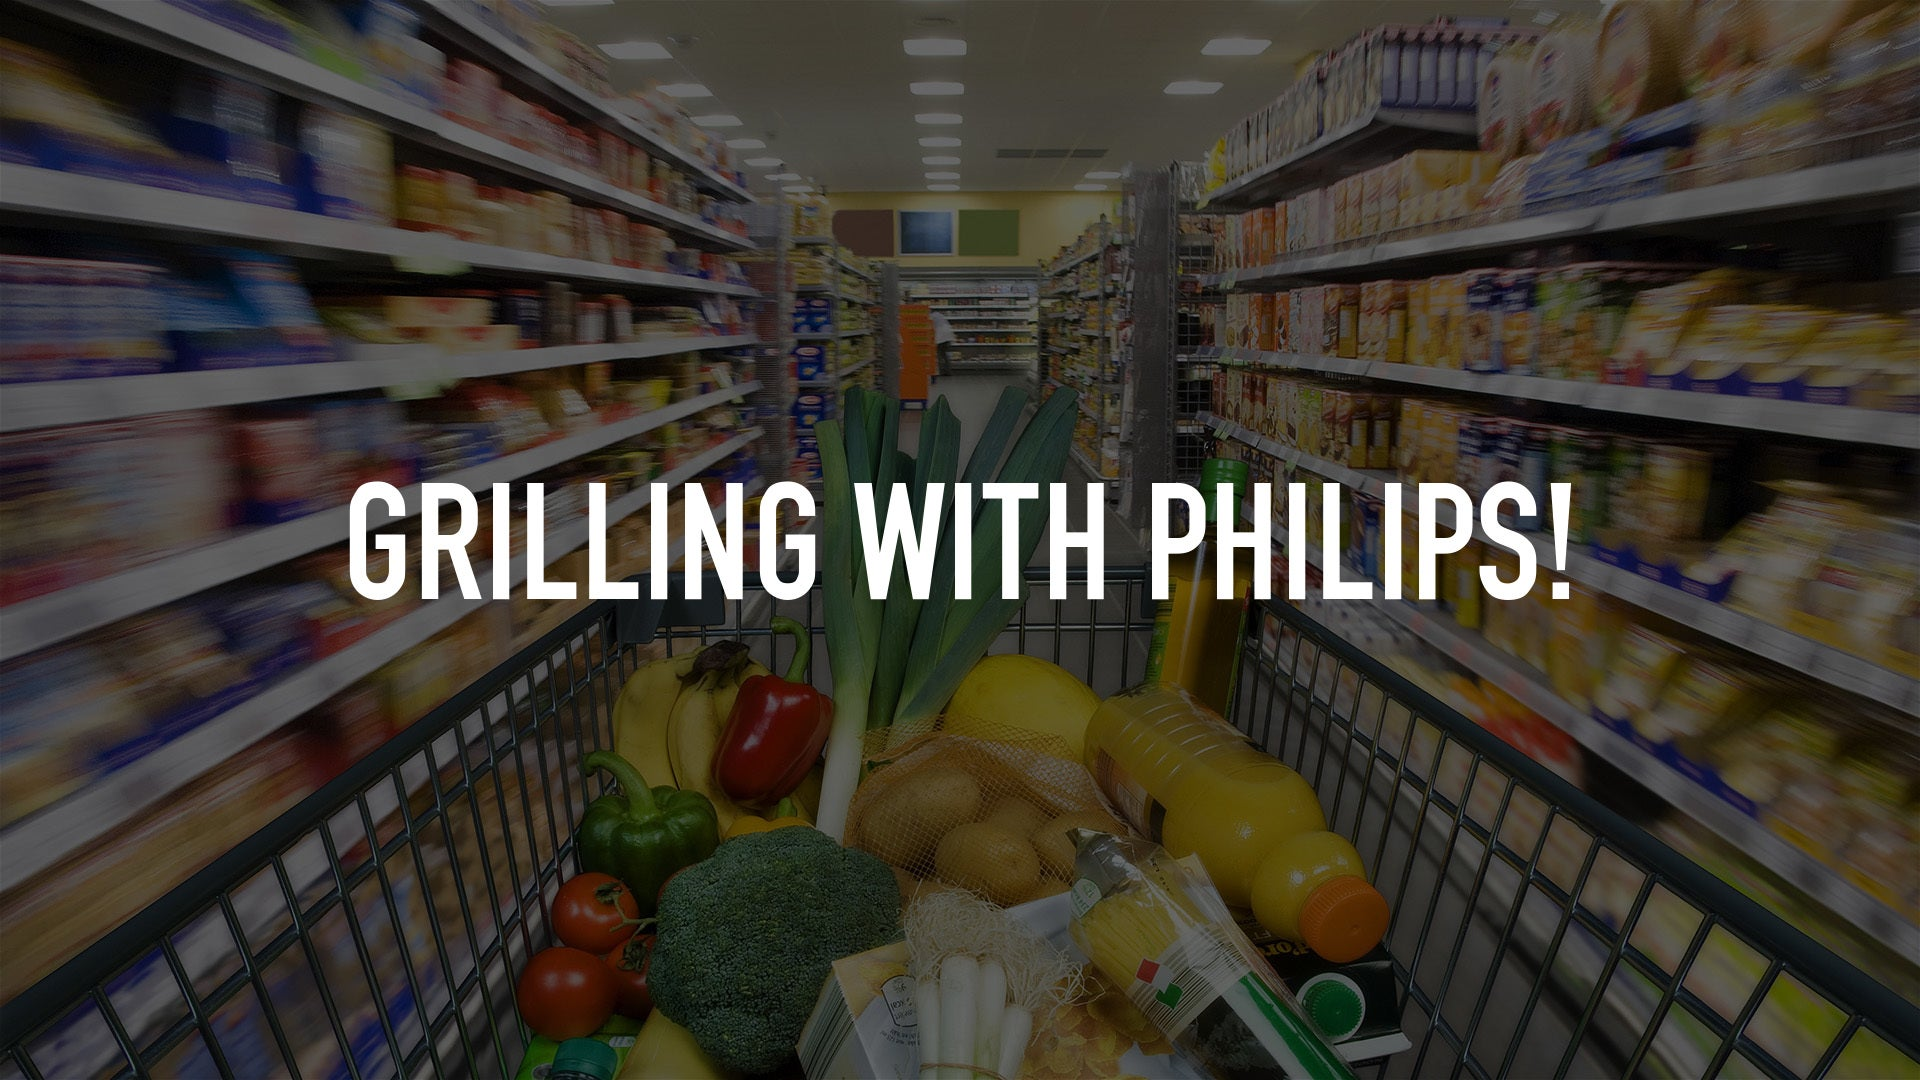 Grilling with Philips!